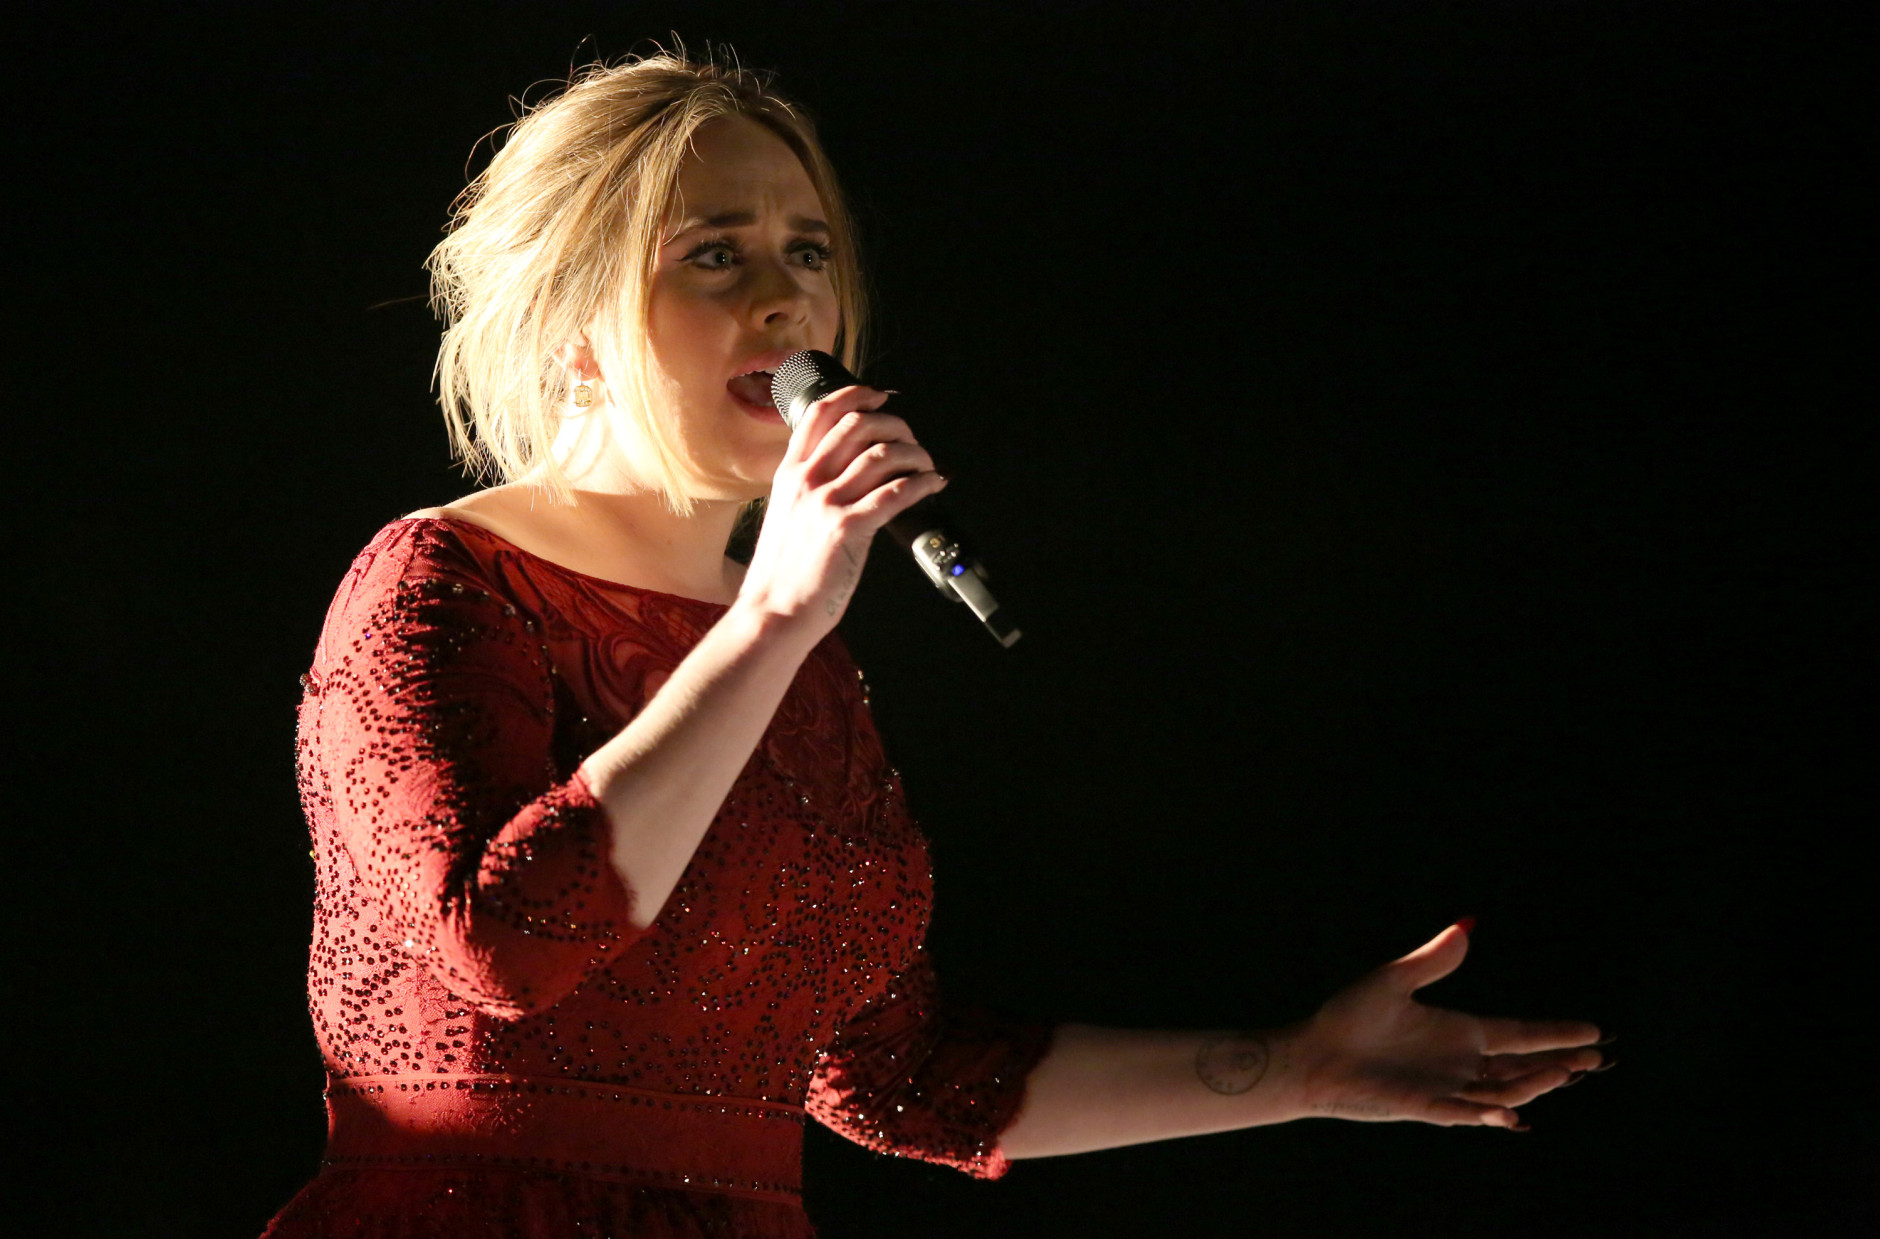 Adele performs at the 58th annual Grammy Awards on Monday, Feb. 15, 2016, in Los Angeles. (Photo by Matt Sayles/Invision/AP)